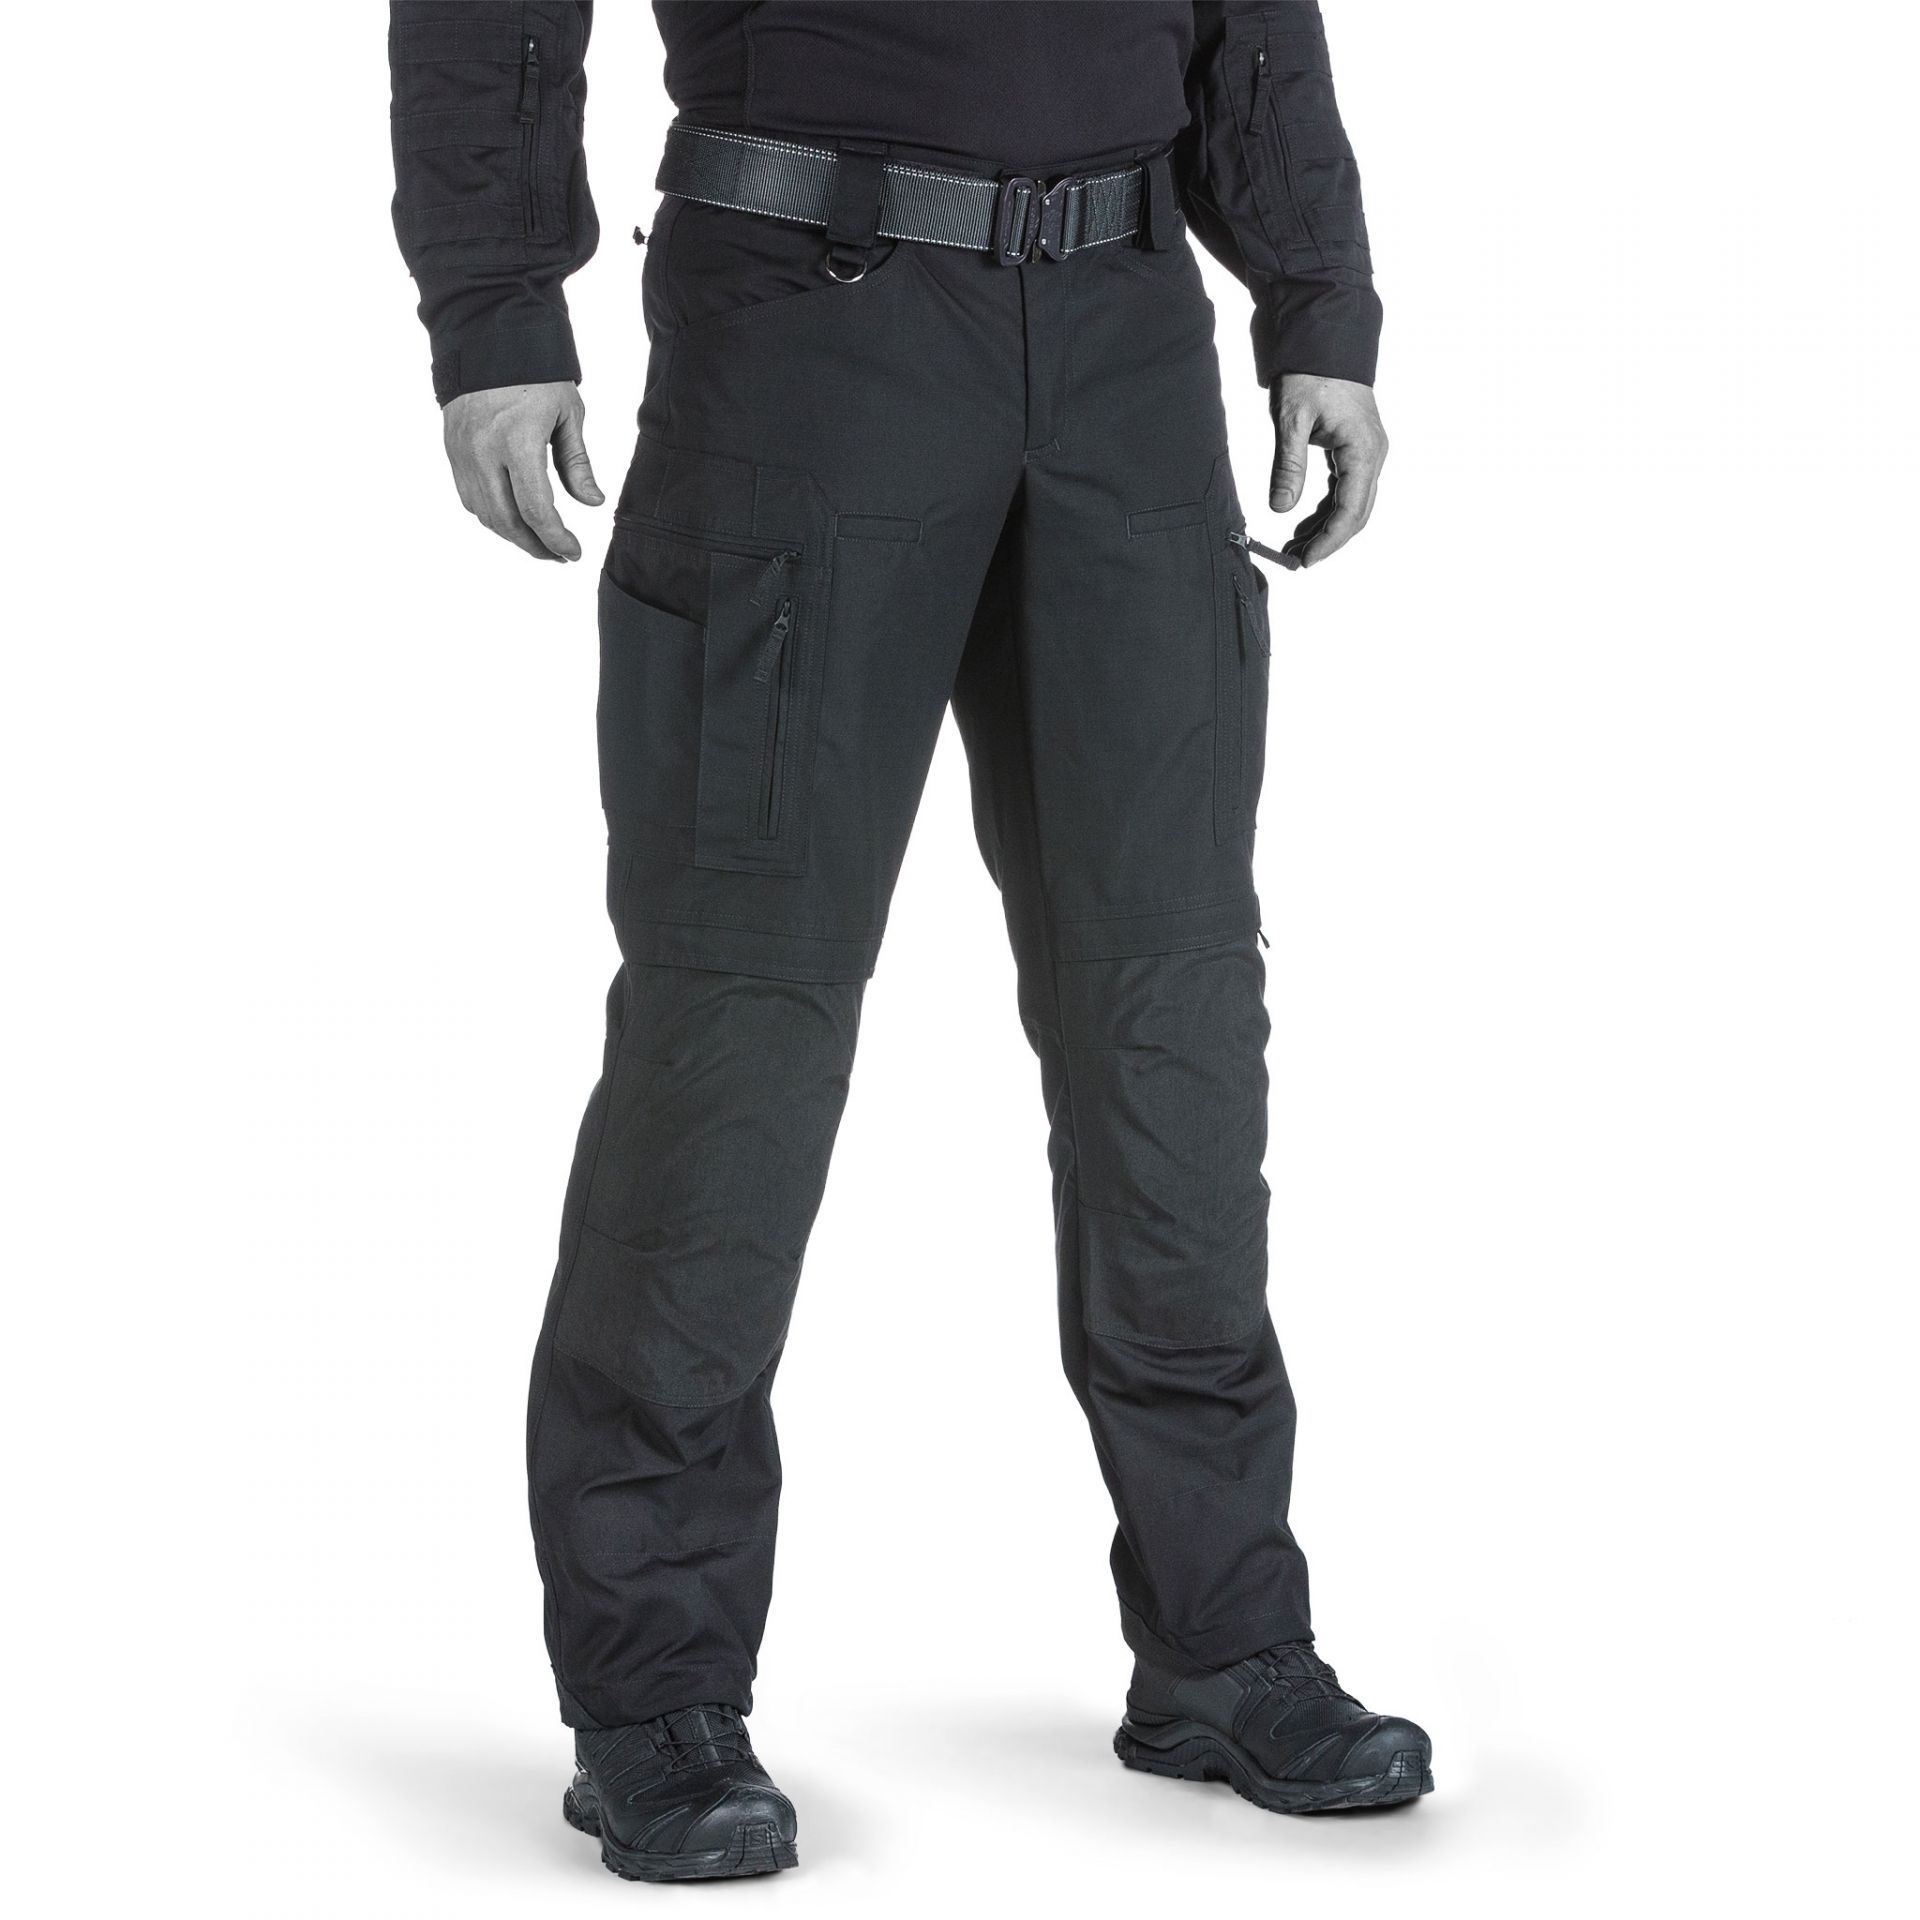 P-40 All Terrain Pants